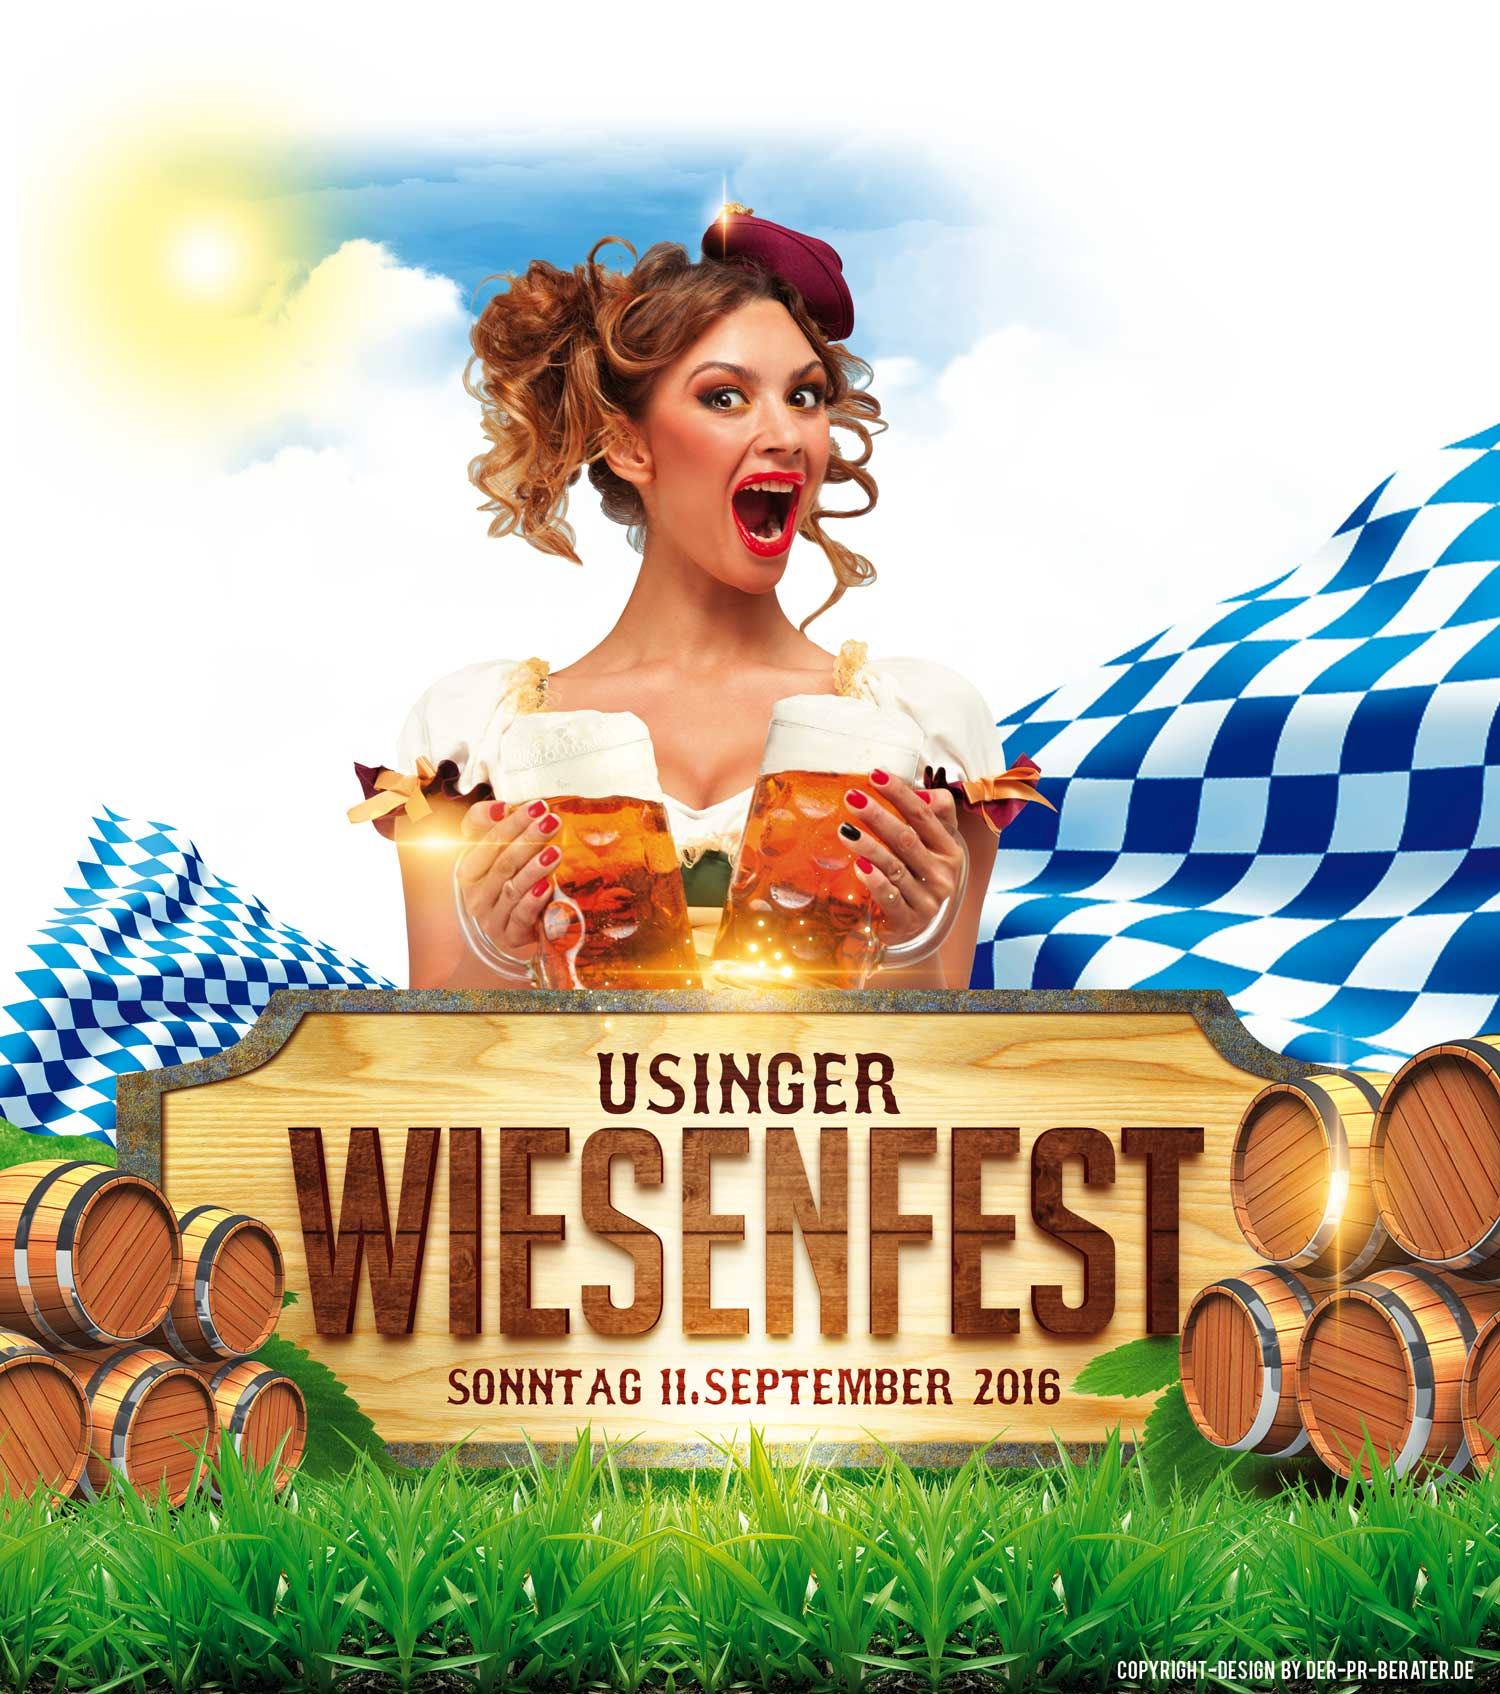 UTSG-Usinger-Laurentius-Markt-2016-Wiesenfest-Design-2016-by-DER-PR-BERATER